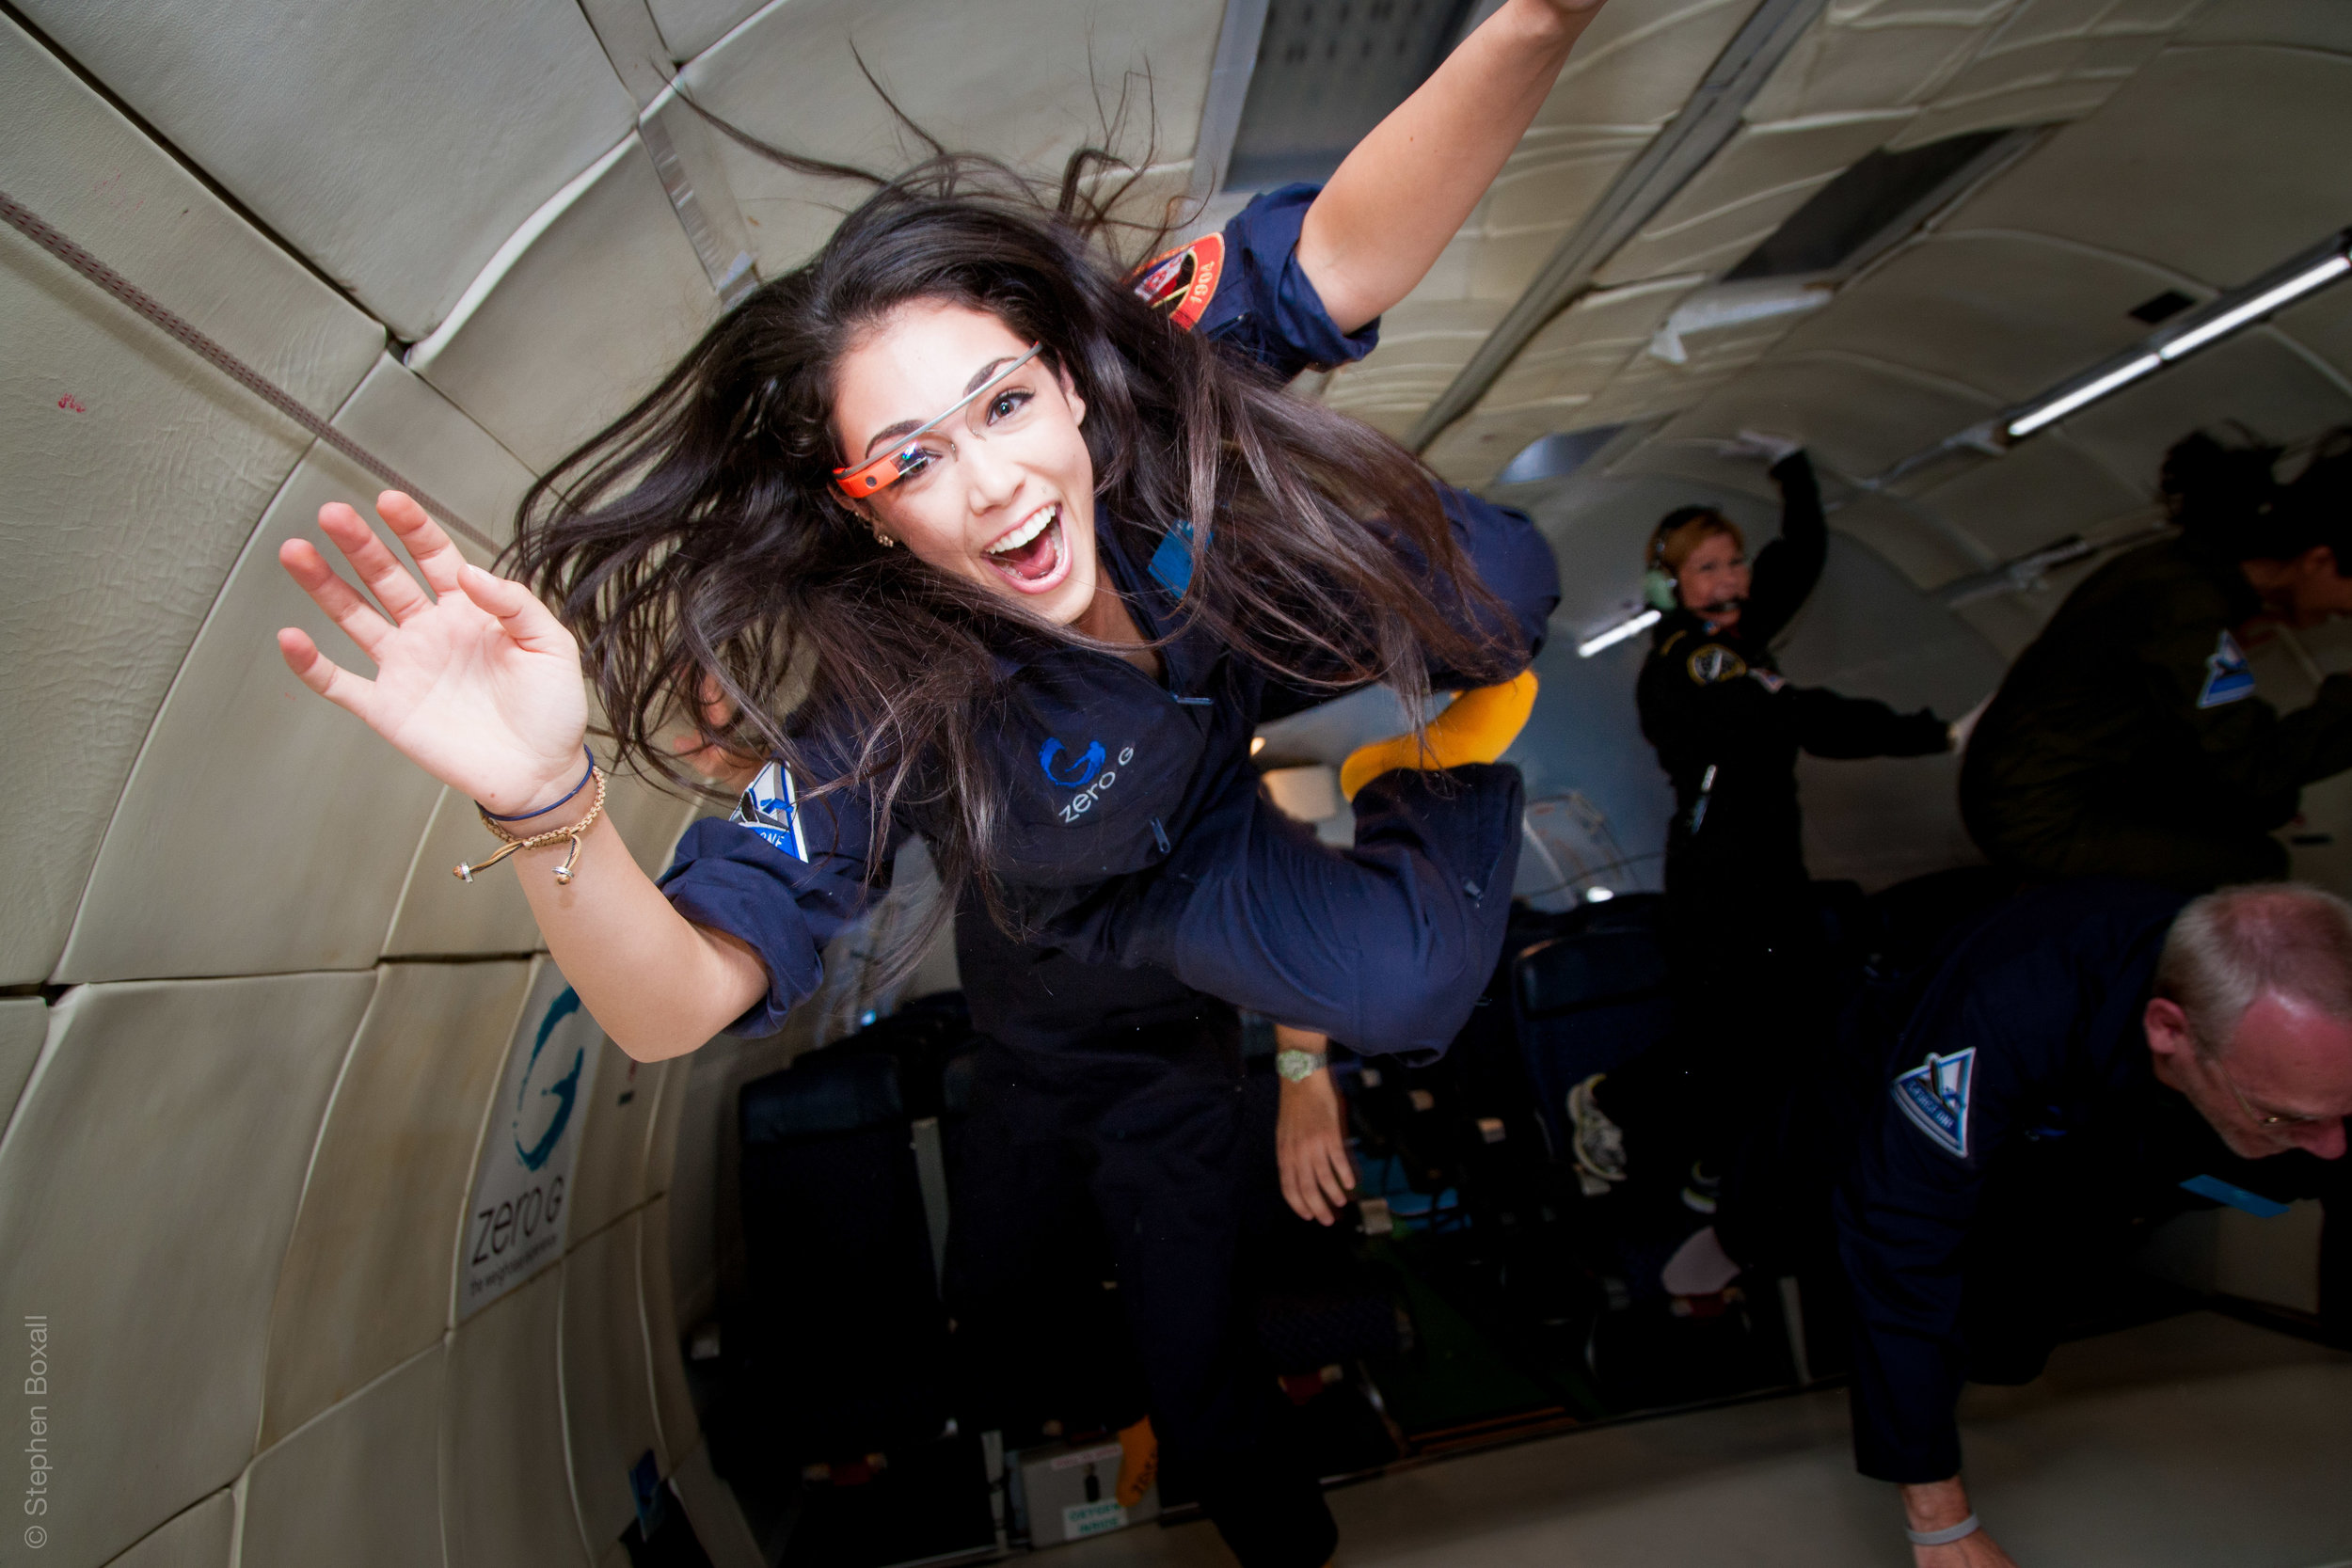 Kellie Gerardi is smiling at the camera and floating in zero gravity. She has long dark brown/black hair and is wearing a navy blue, Zero G jumpsuit and smart glasses.